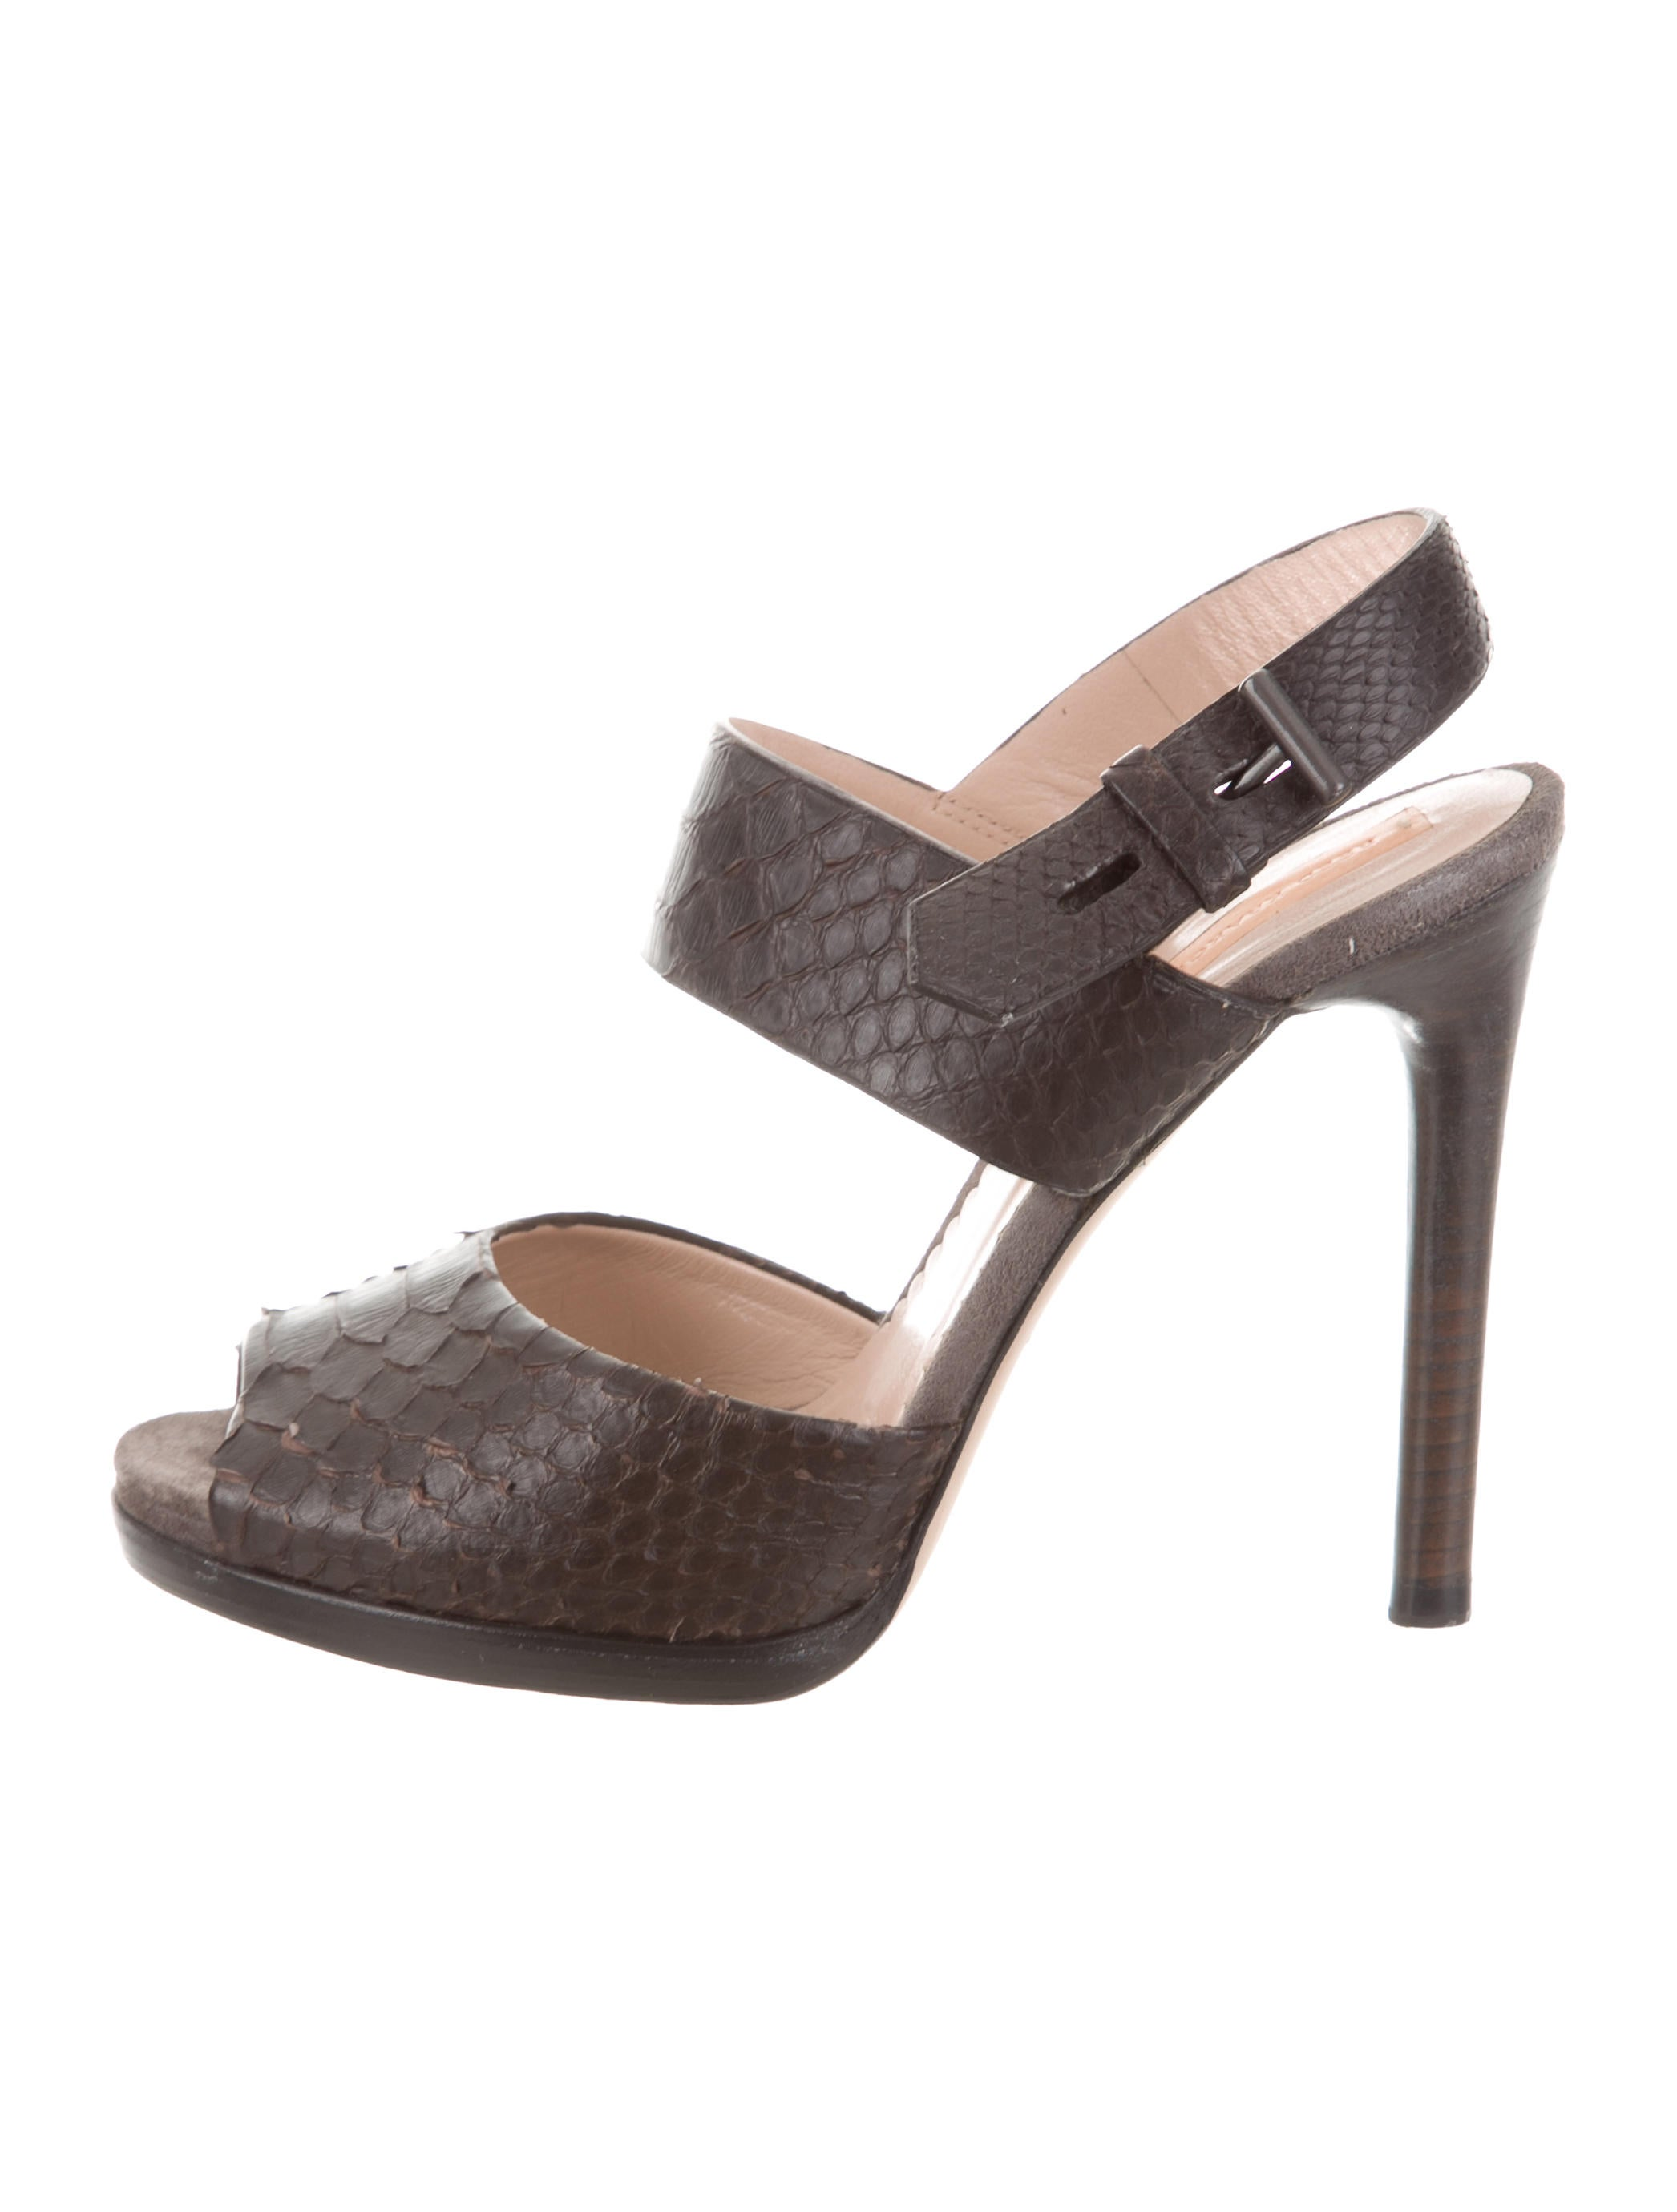 outlet Inexpensive Reed Krakoff Python Ankle-Strap Sandals buy cheap low shipping fee clearance get to buy BNWnqv7vn